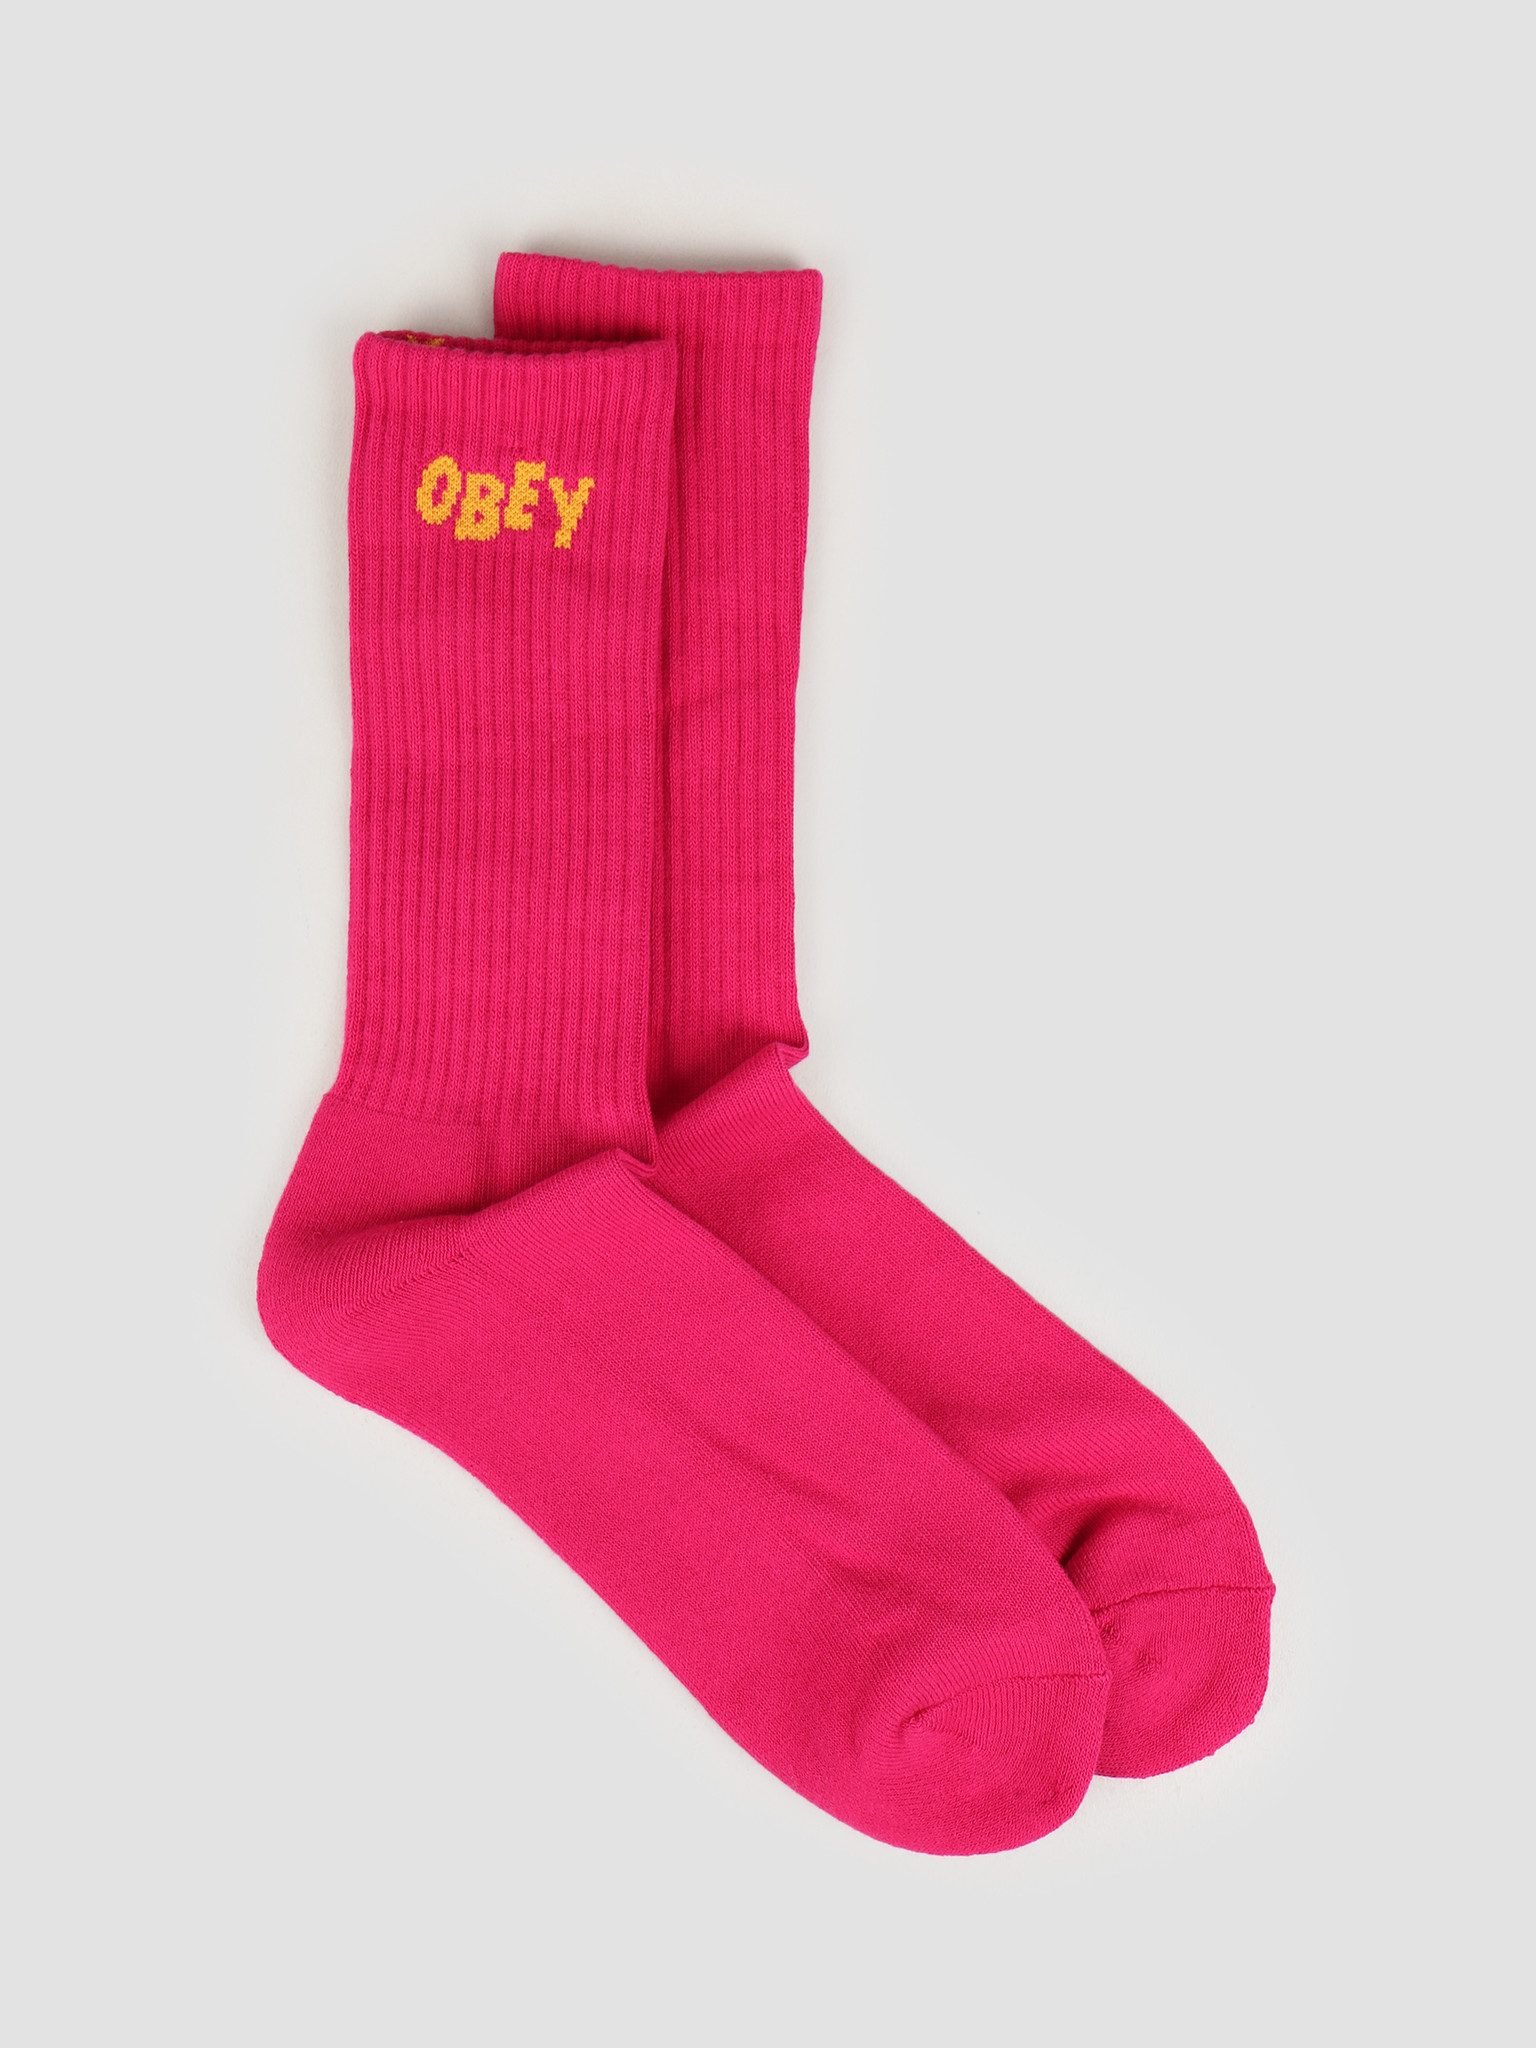 Obey Obey OBEY Jumbled Socks Magenta / yellow 100260089 MAY